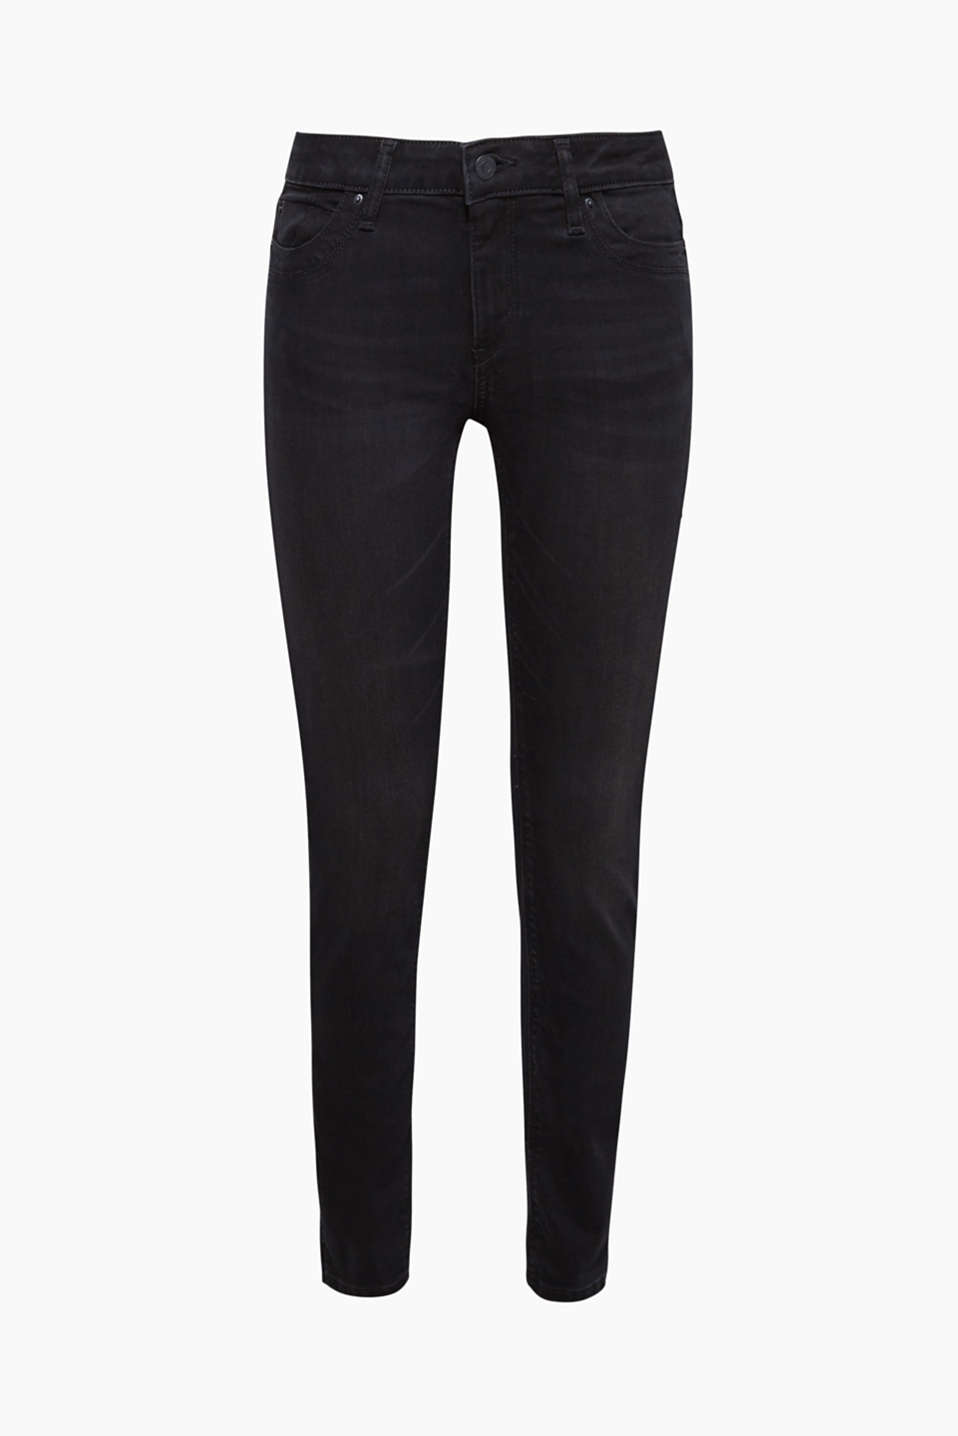 These black, narrow cut stretch jeans are partially finished in recycled material!